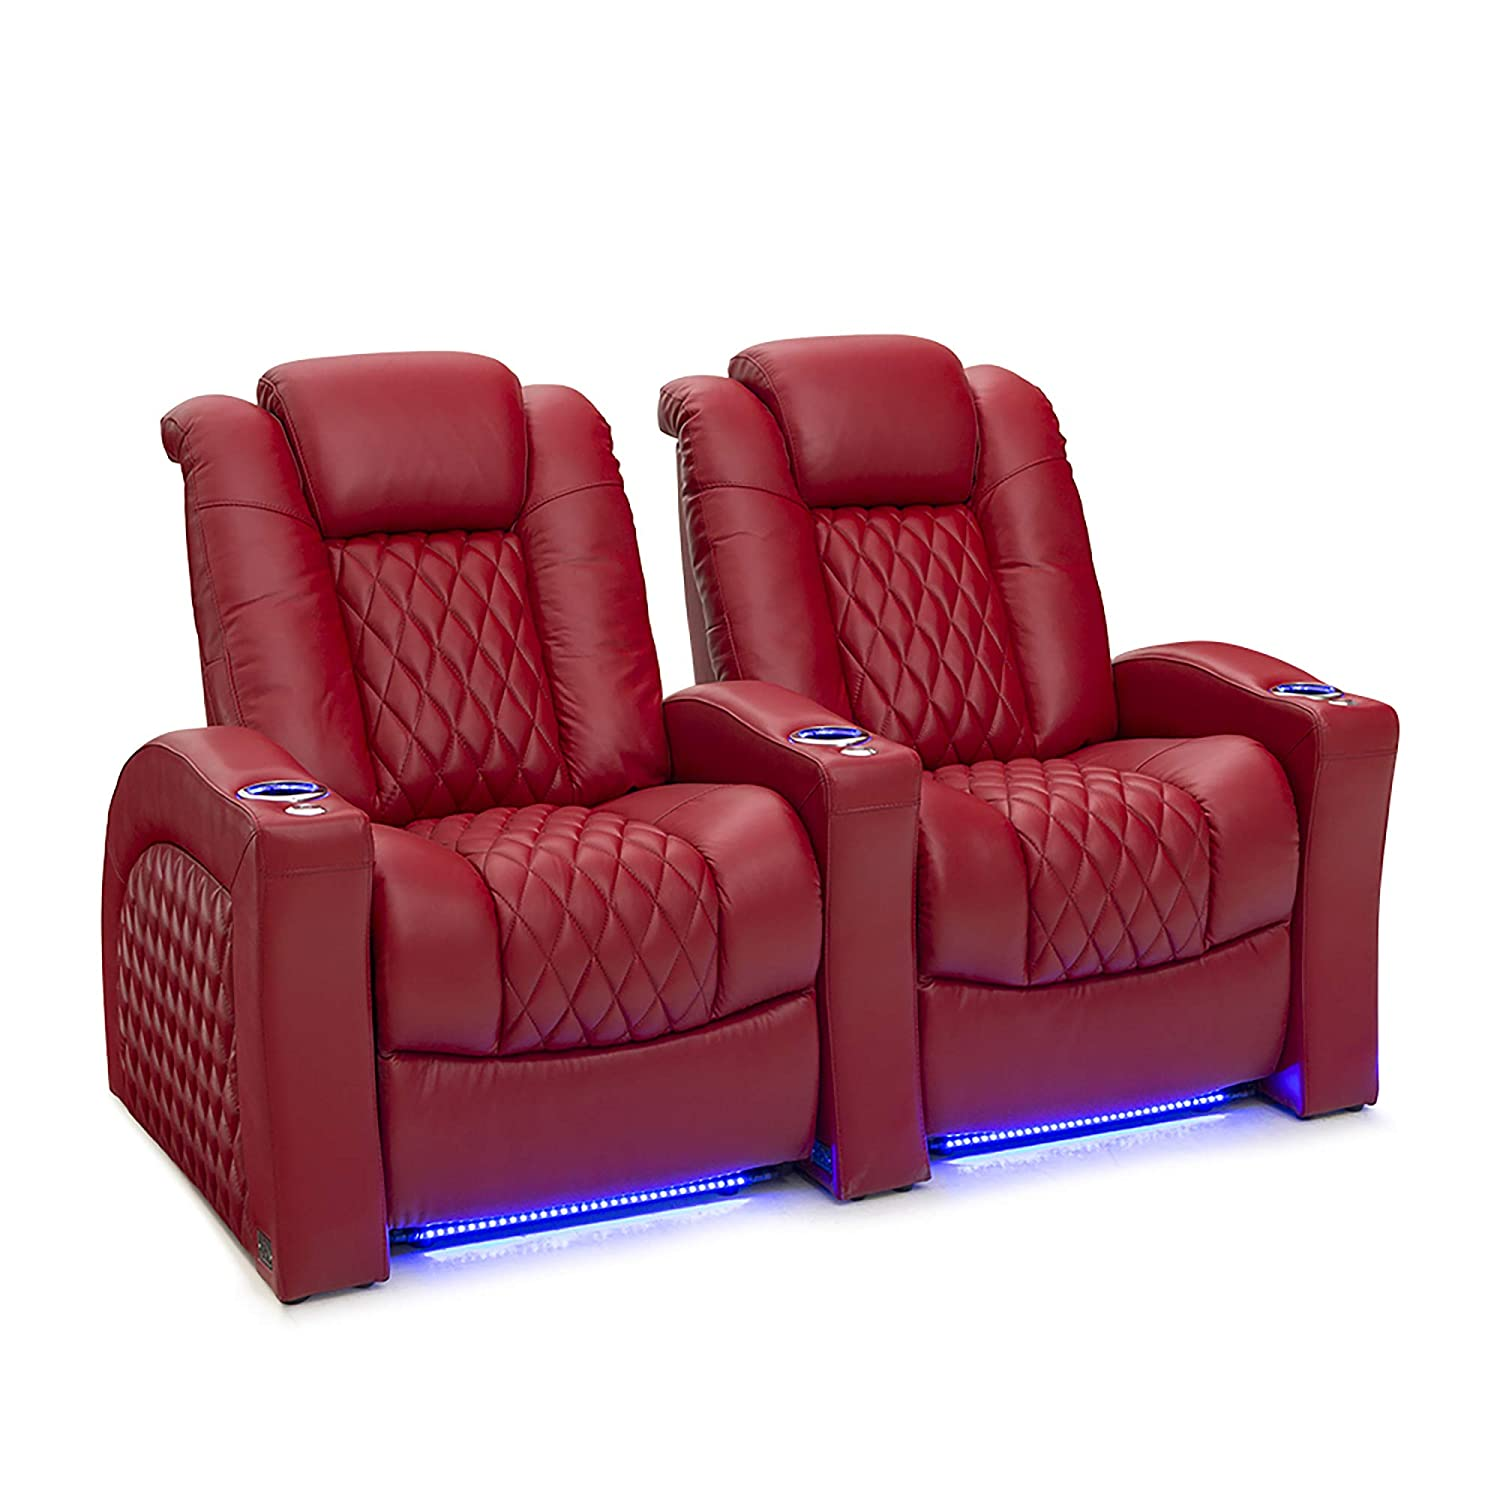 Base Lighting USB Charging Power Recliner Home Theater Seating Seatcraft Stanza Leather Brown Adjustable Powered Headrest and Lumbar Support SoundShaker Lighted Cup Holders